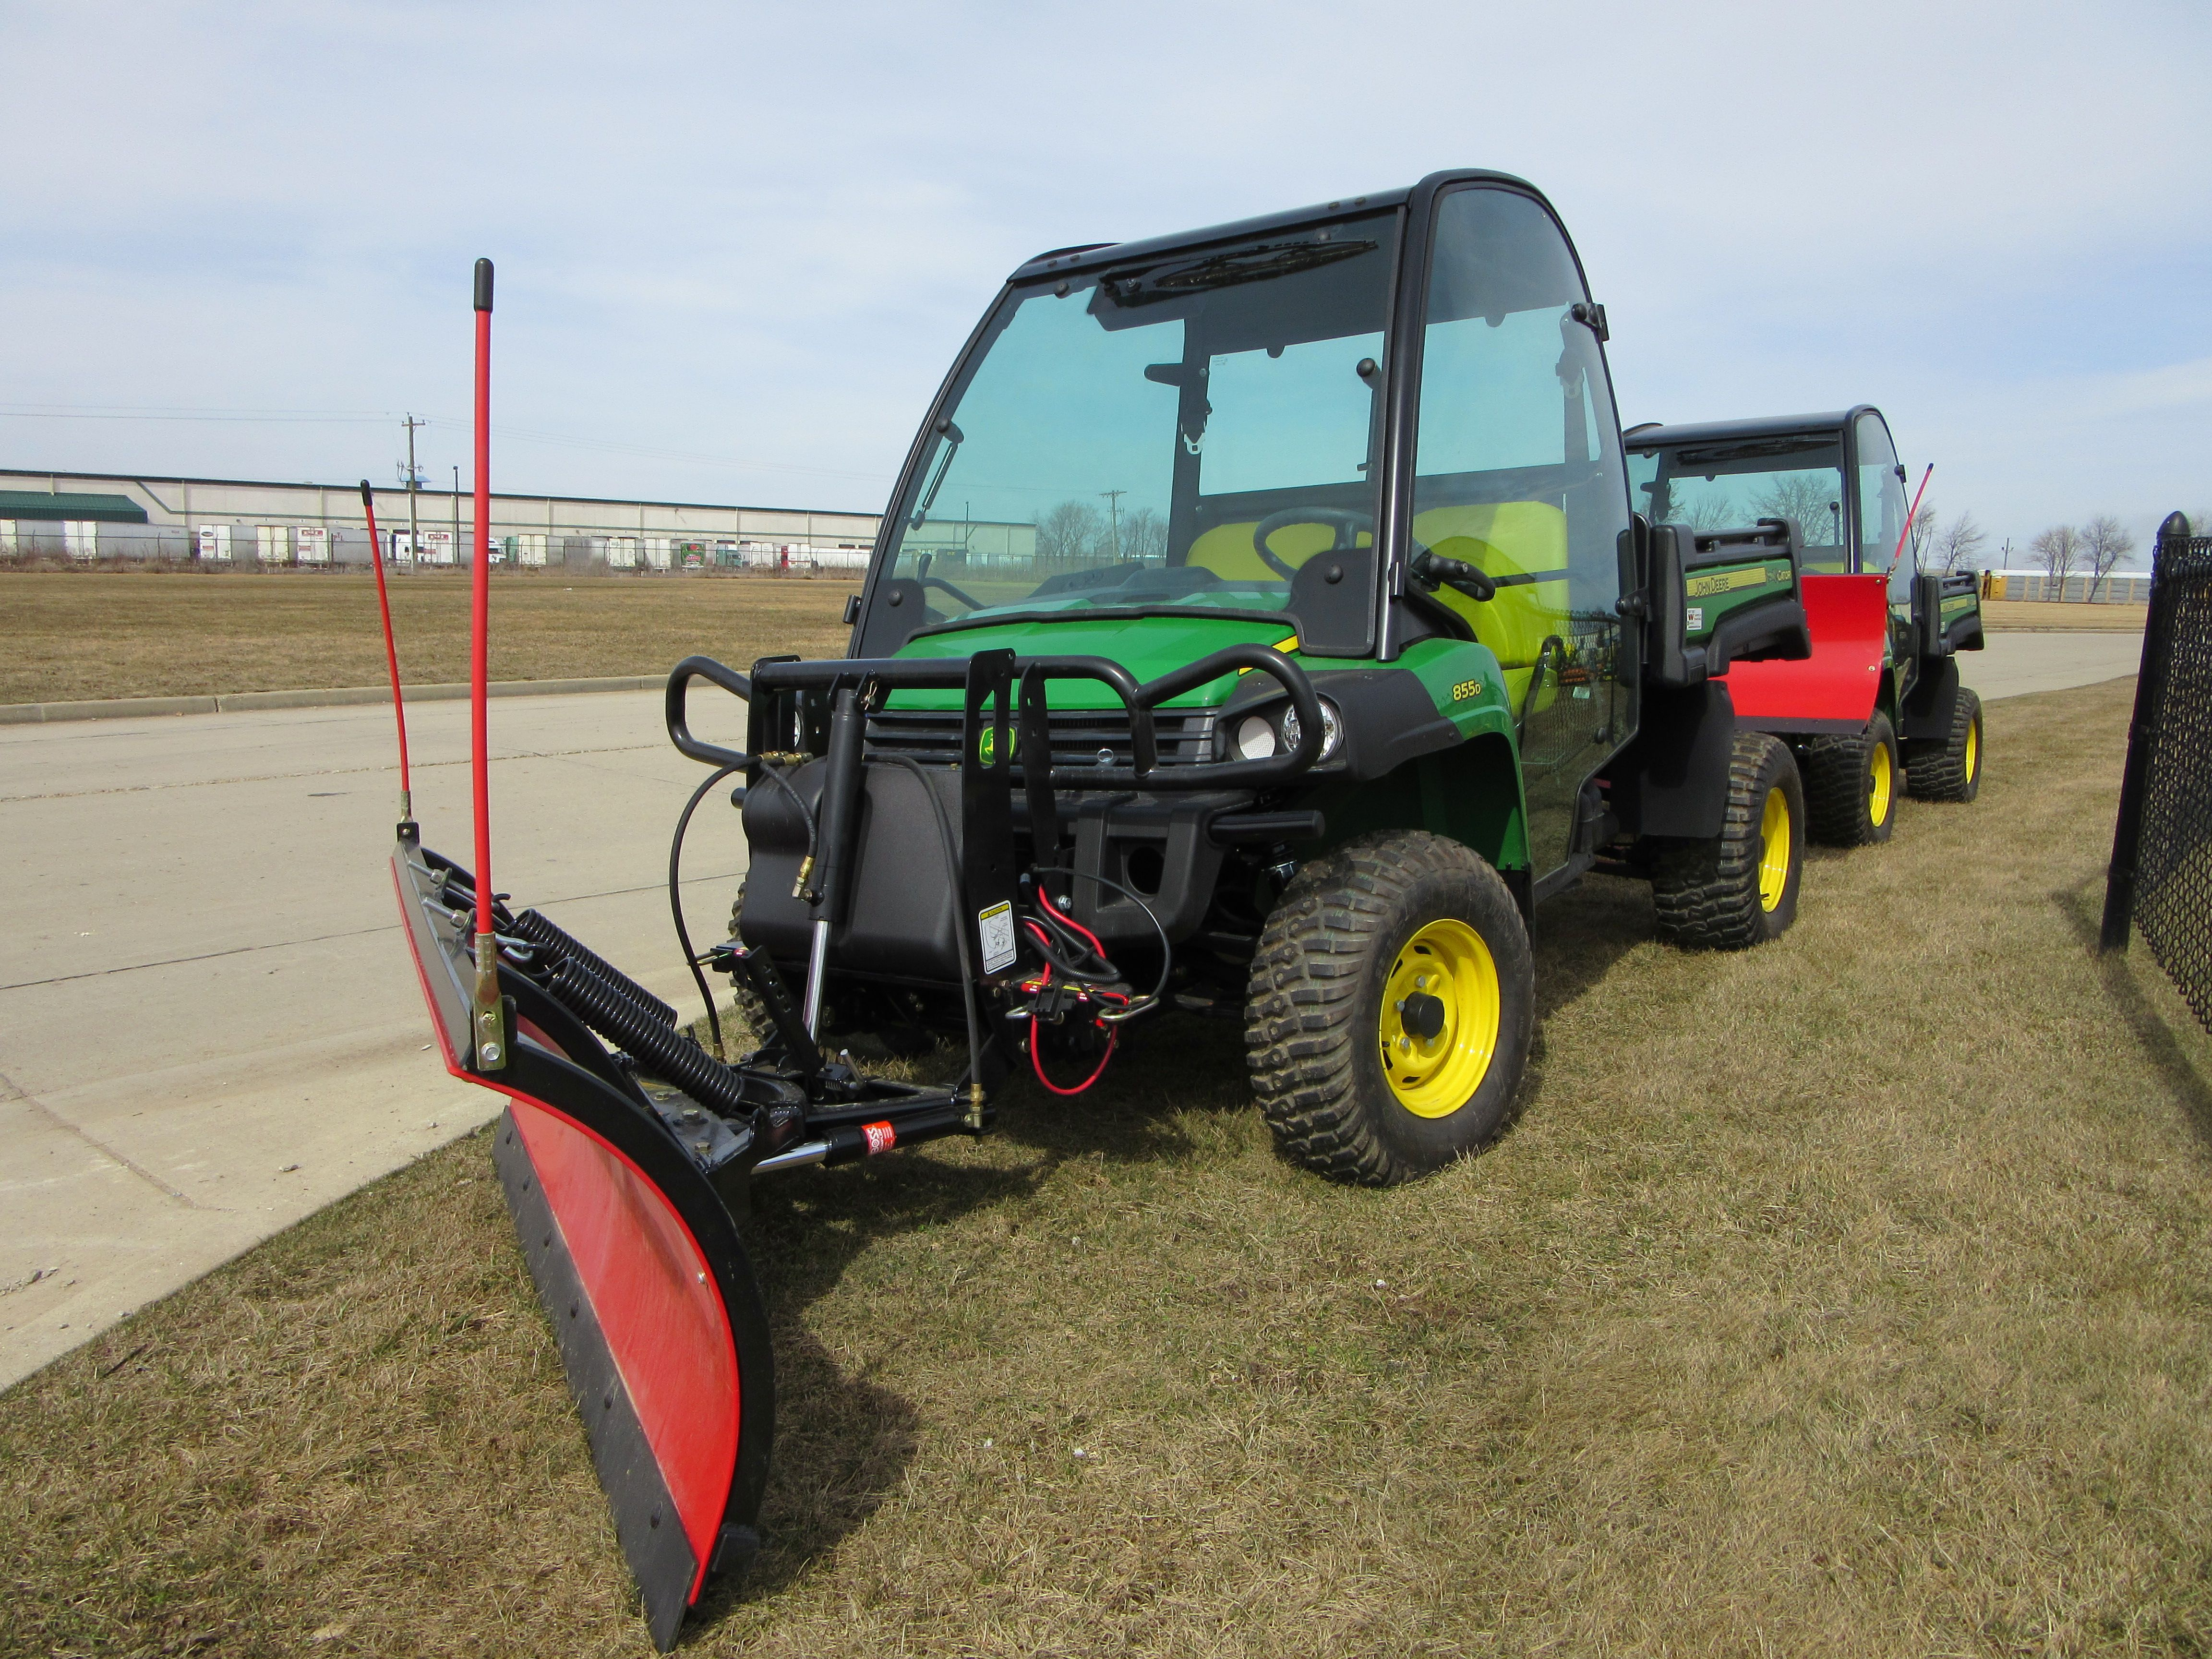 john deere gator 855d with red boss plow | osprey emergency rescue